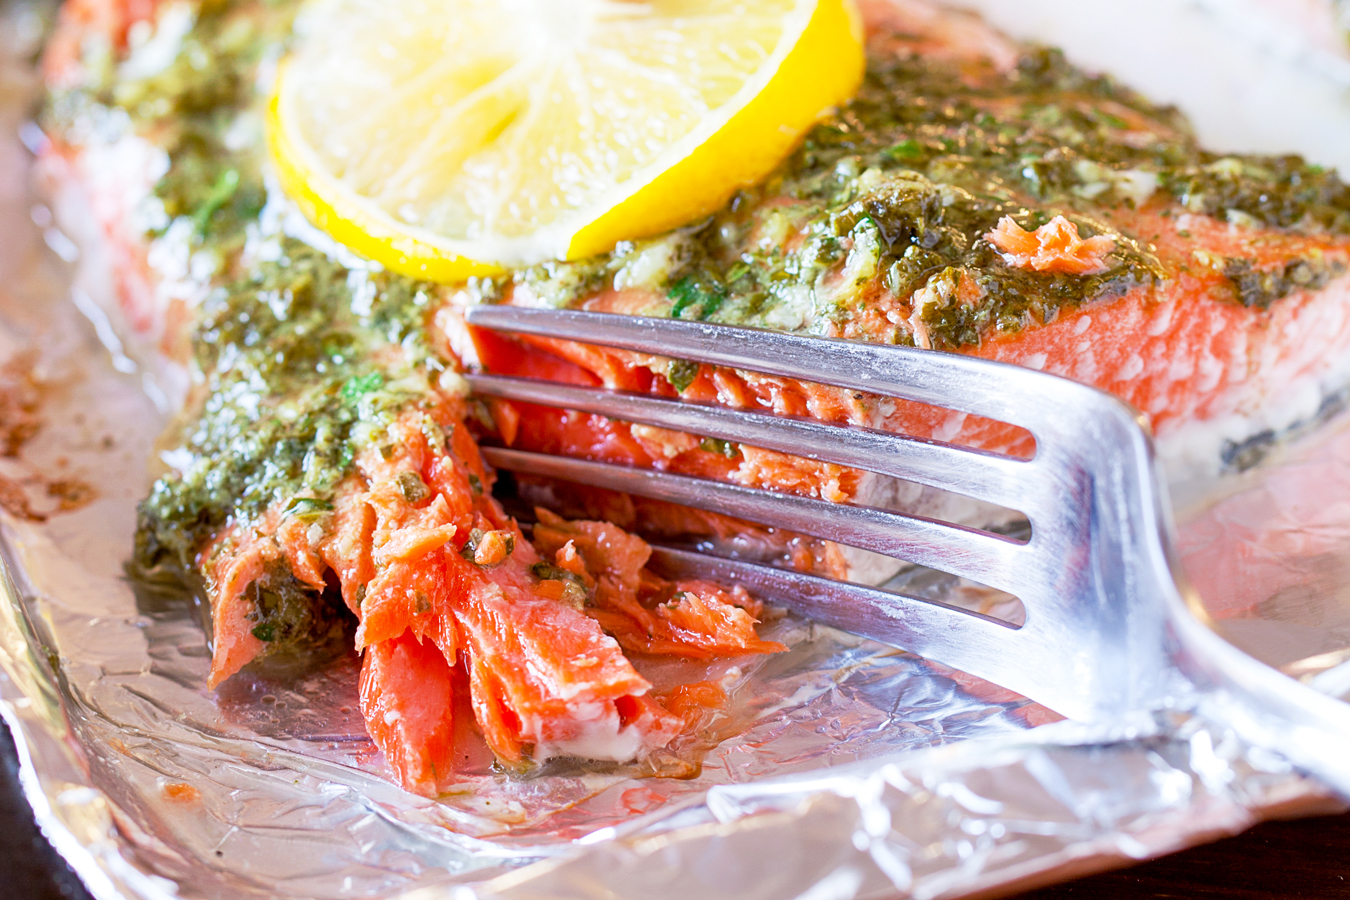 Baked Lemon and Herb Salmon - Juicy and delicious and ready in less than 20 minutes!